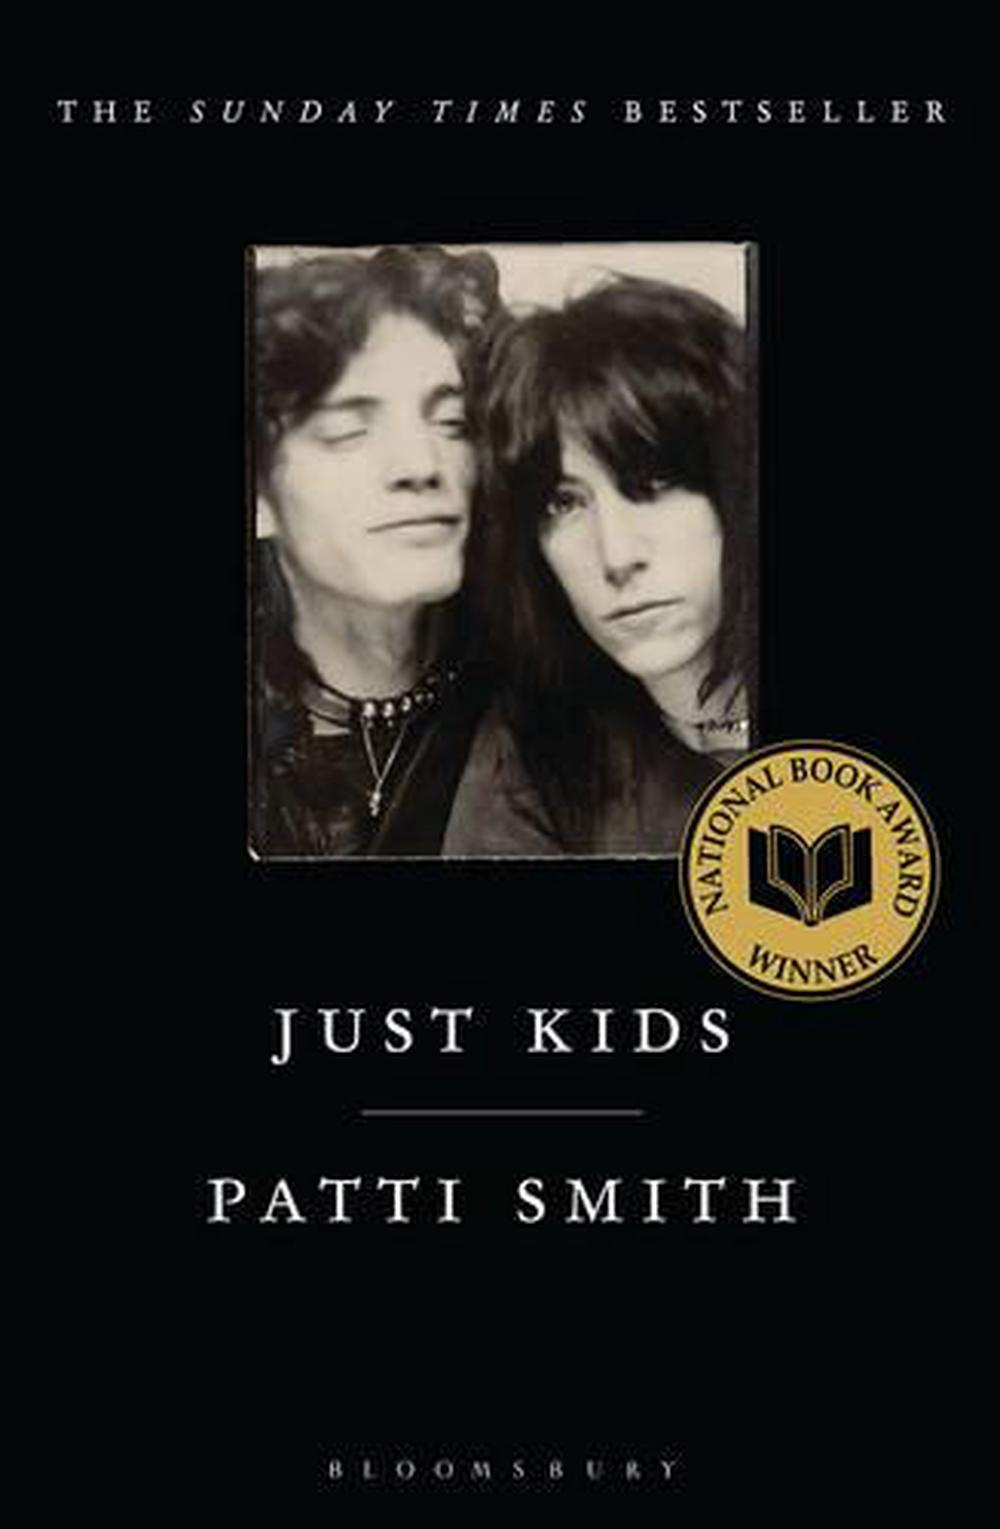 just kids by patti smith Patti smith has a mythic imagination as a young, desperately poor poet from southern new jersey, she headed to new york to seek her fortune, nothing in her just kids should interest any reader who wants to know how an artistic ­career can be launched smith gave a carefully staged and prepared.